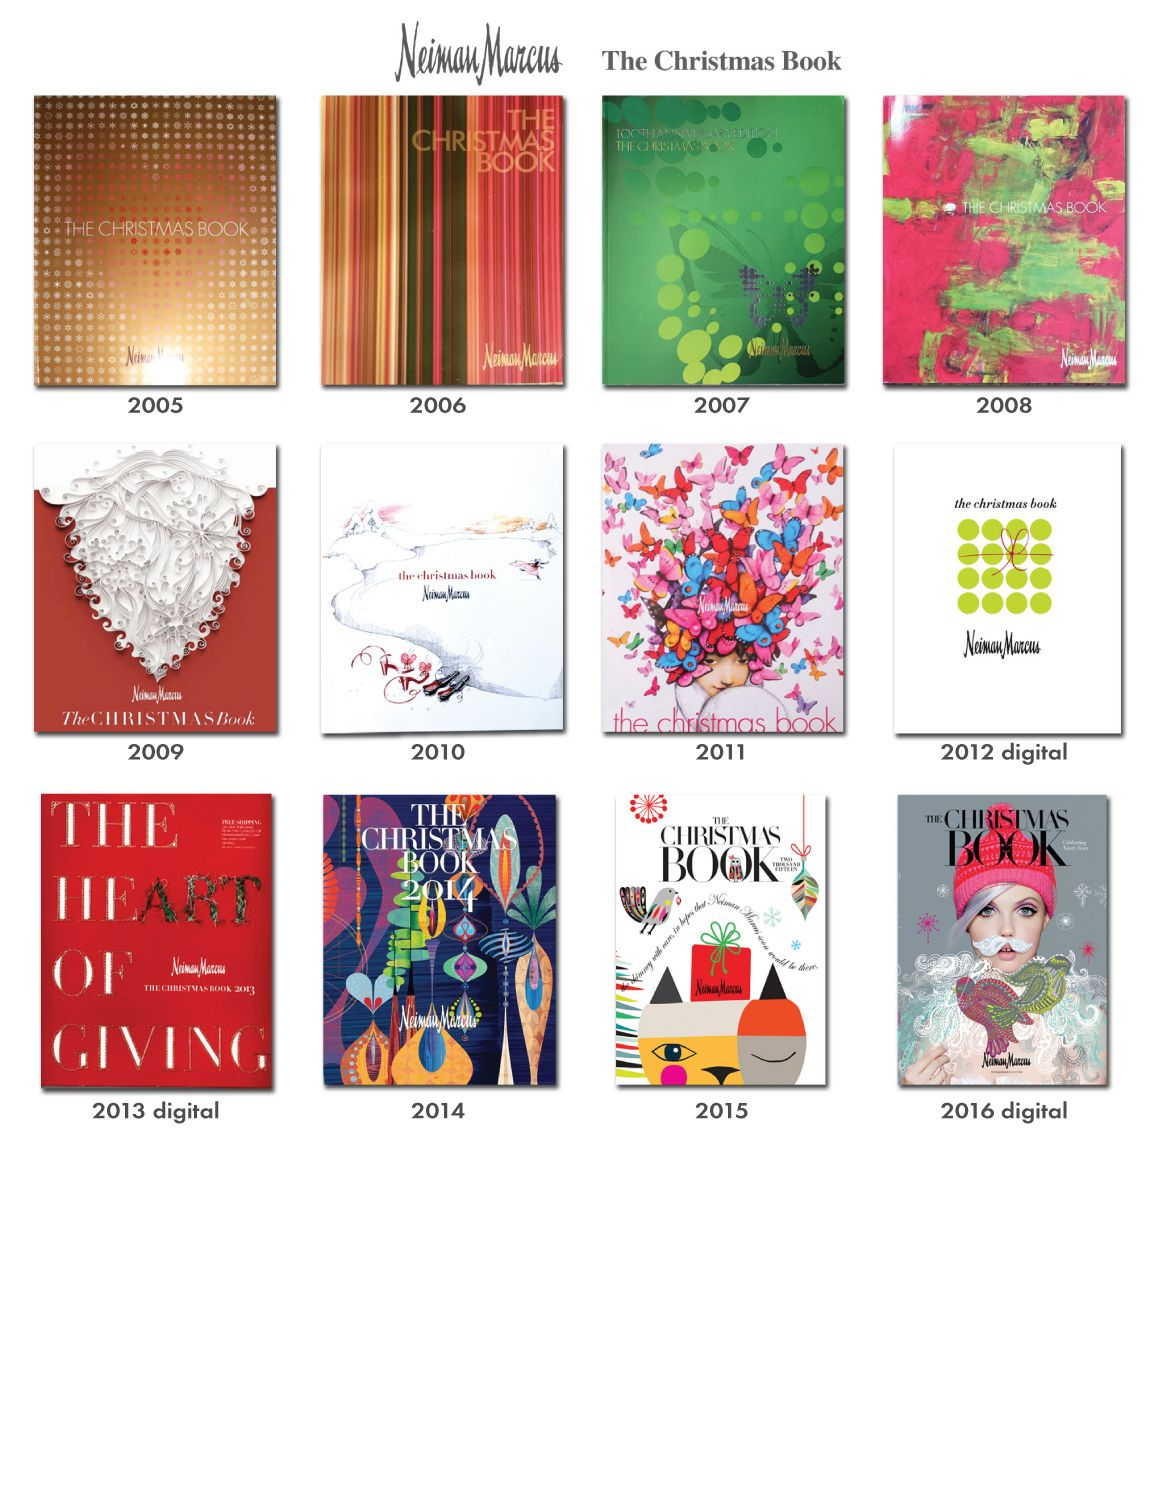 Neimanmarcus Christmas.Reference Guide Collection Of Nm Neiman Marcus Holiday